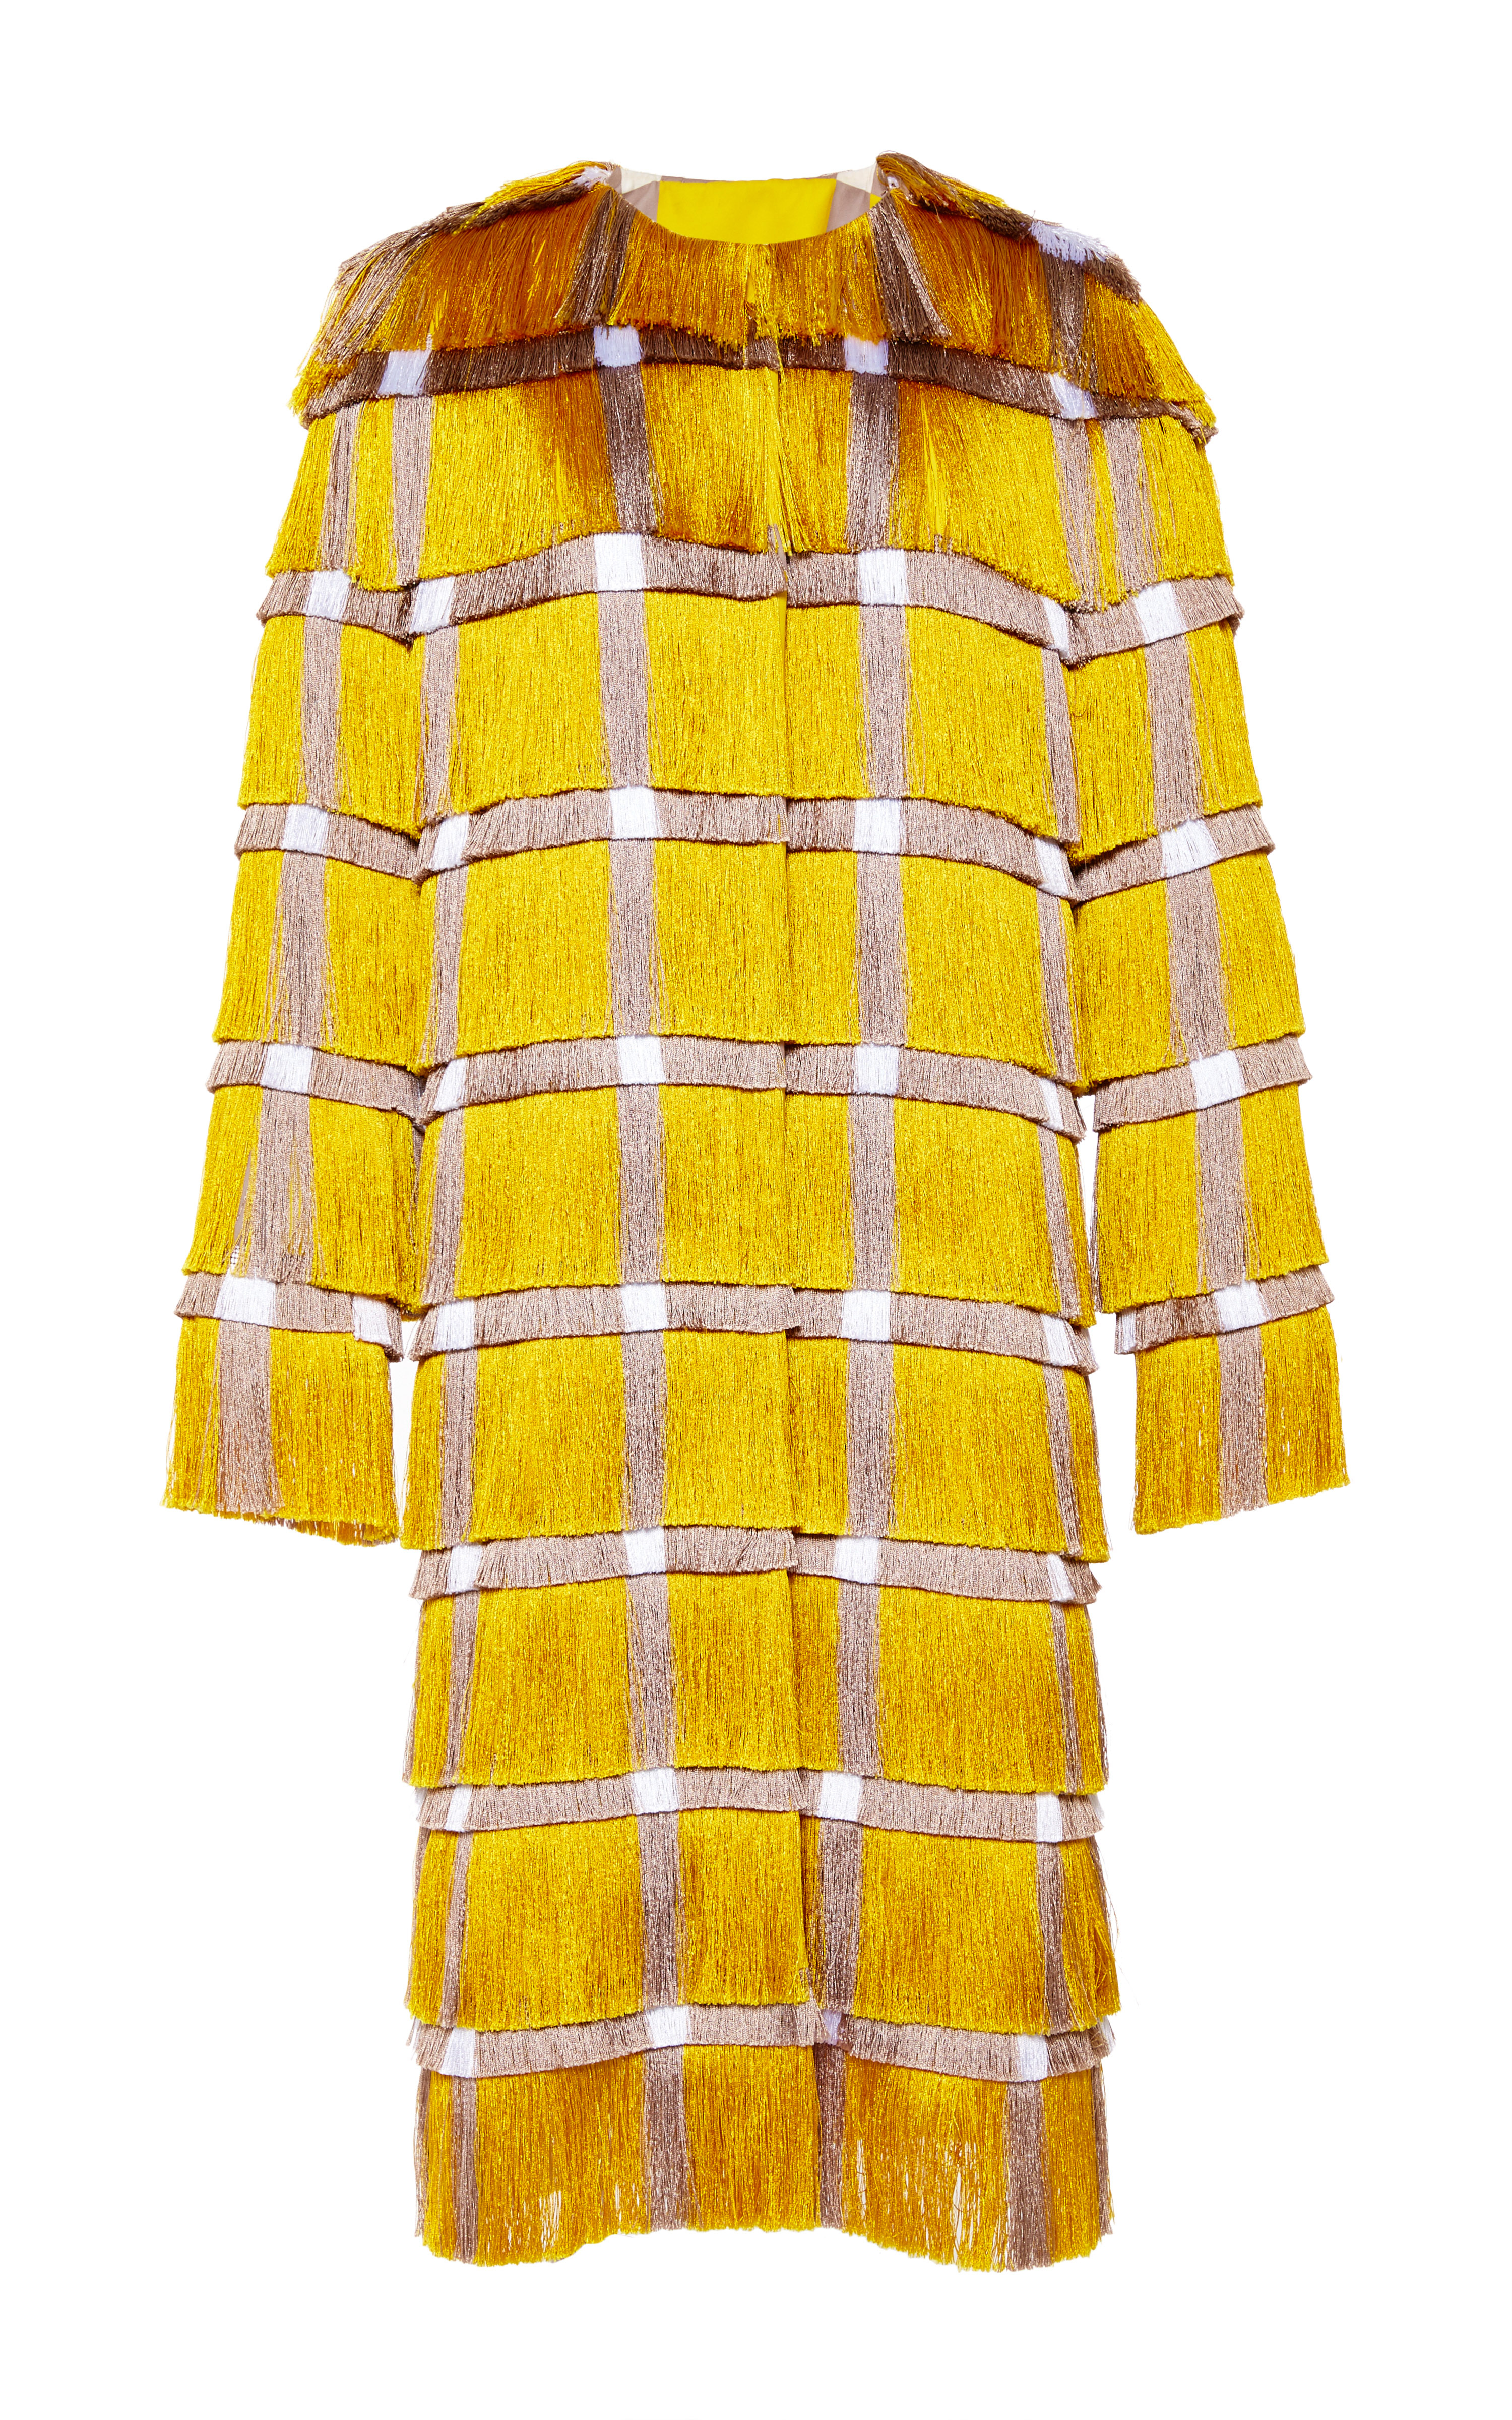 ac665e3b18 Marco De Vincenzo Fringe Cady Coat in Yellow in Yellow - Lyst